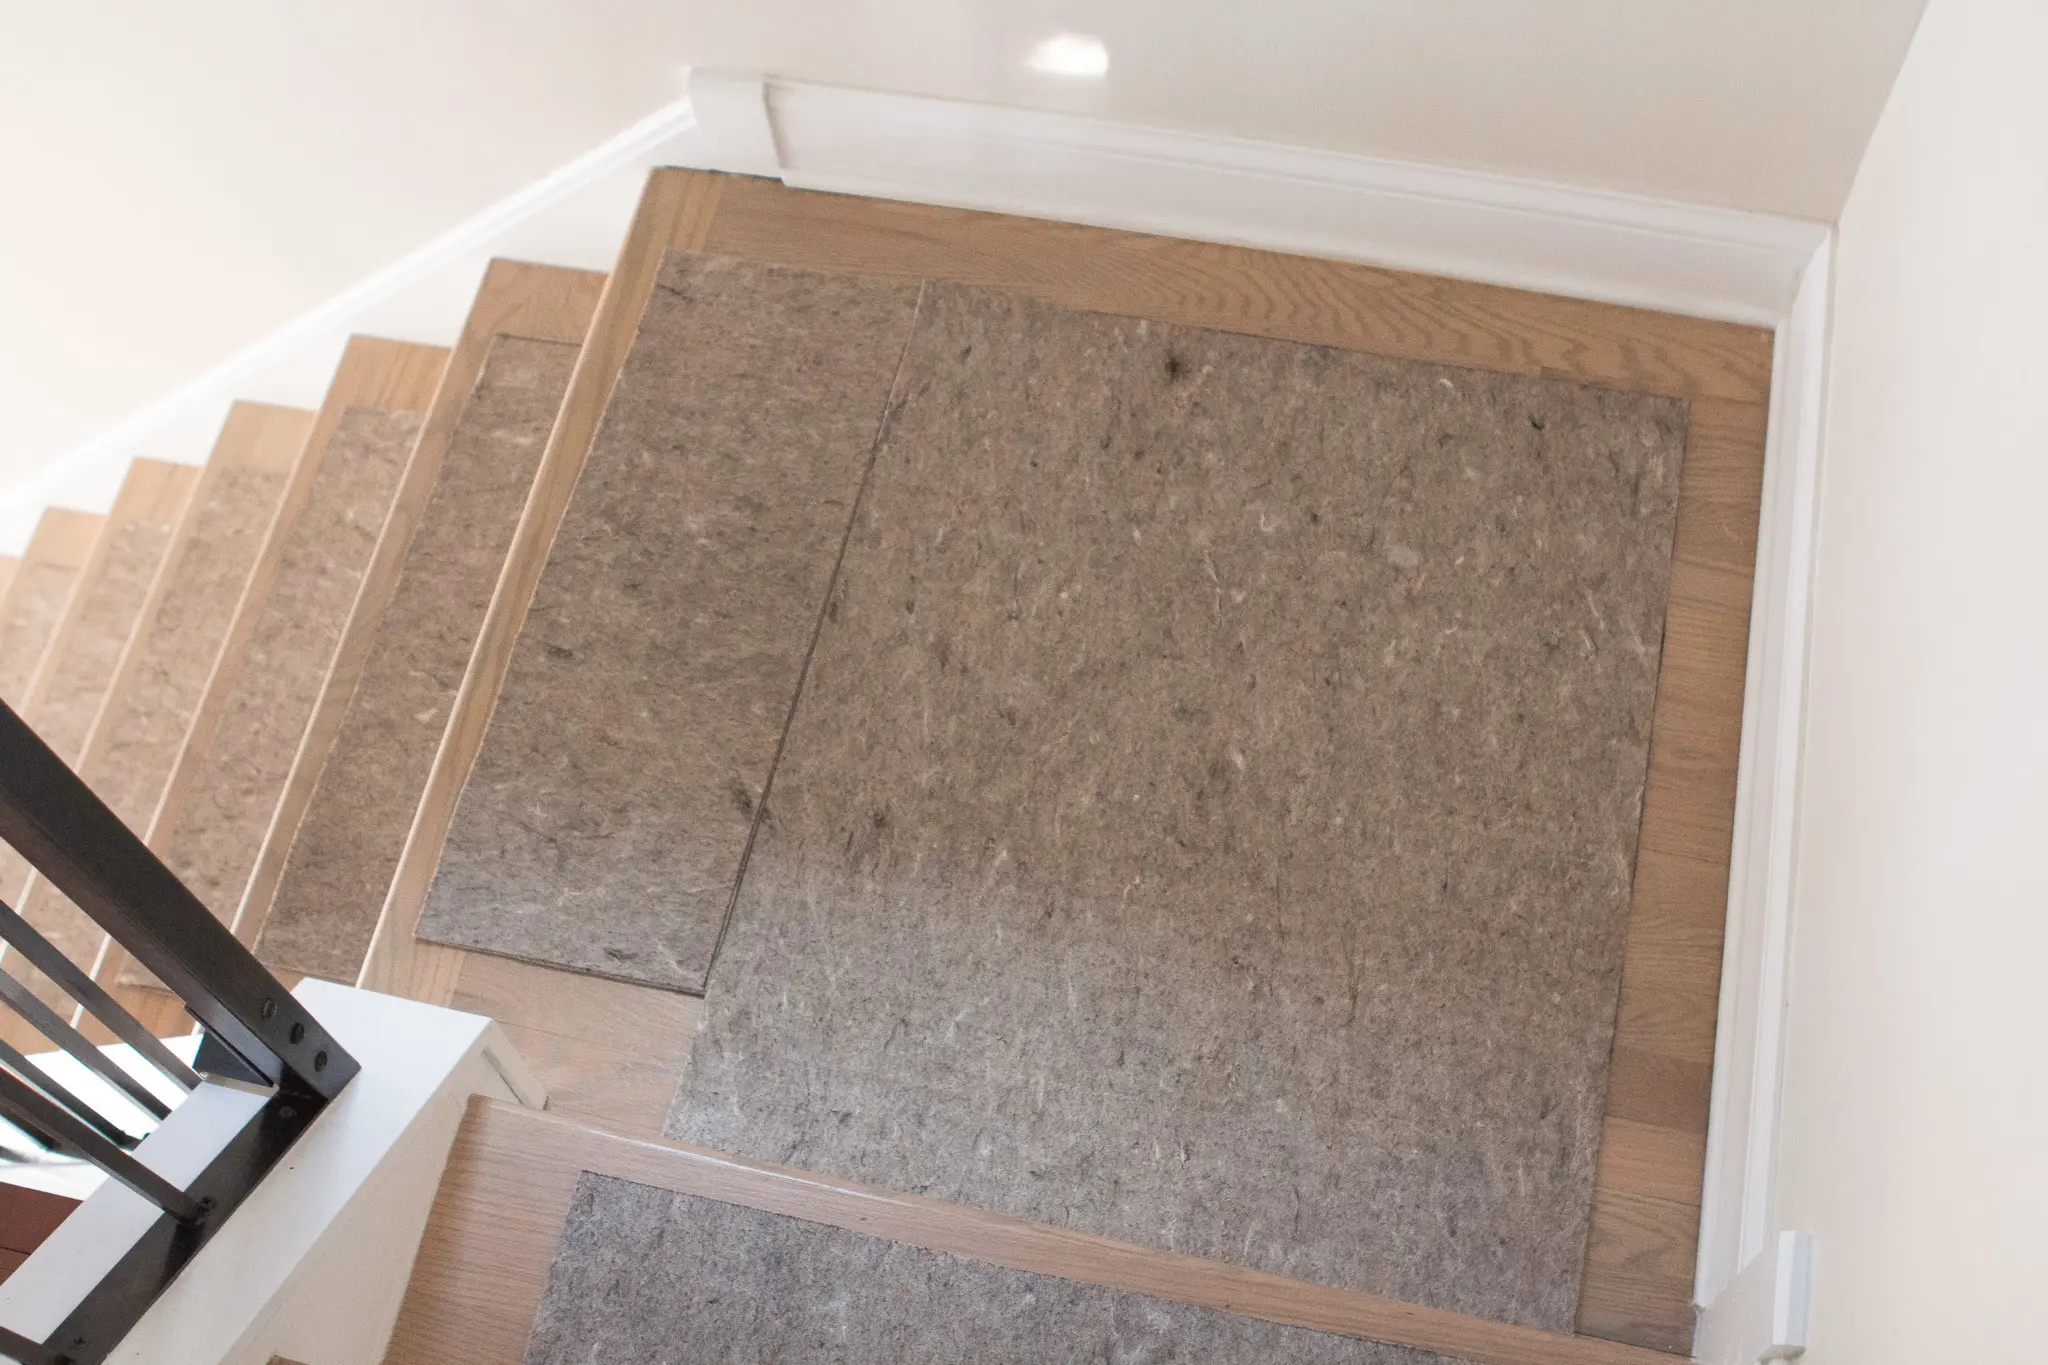 How To Install A Stair Runner On Hardwoods The Diy Playbook   Carpet Runners For Stairs And Landing   Carpet Hampton Style   Hallway   Stair Runner Matching Landing   Fitted   Farmhouse